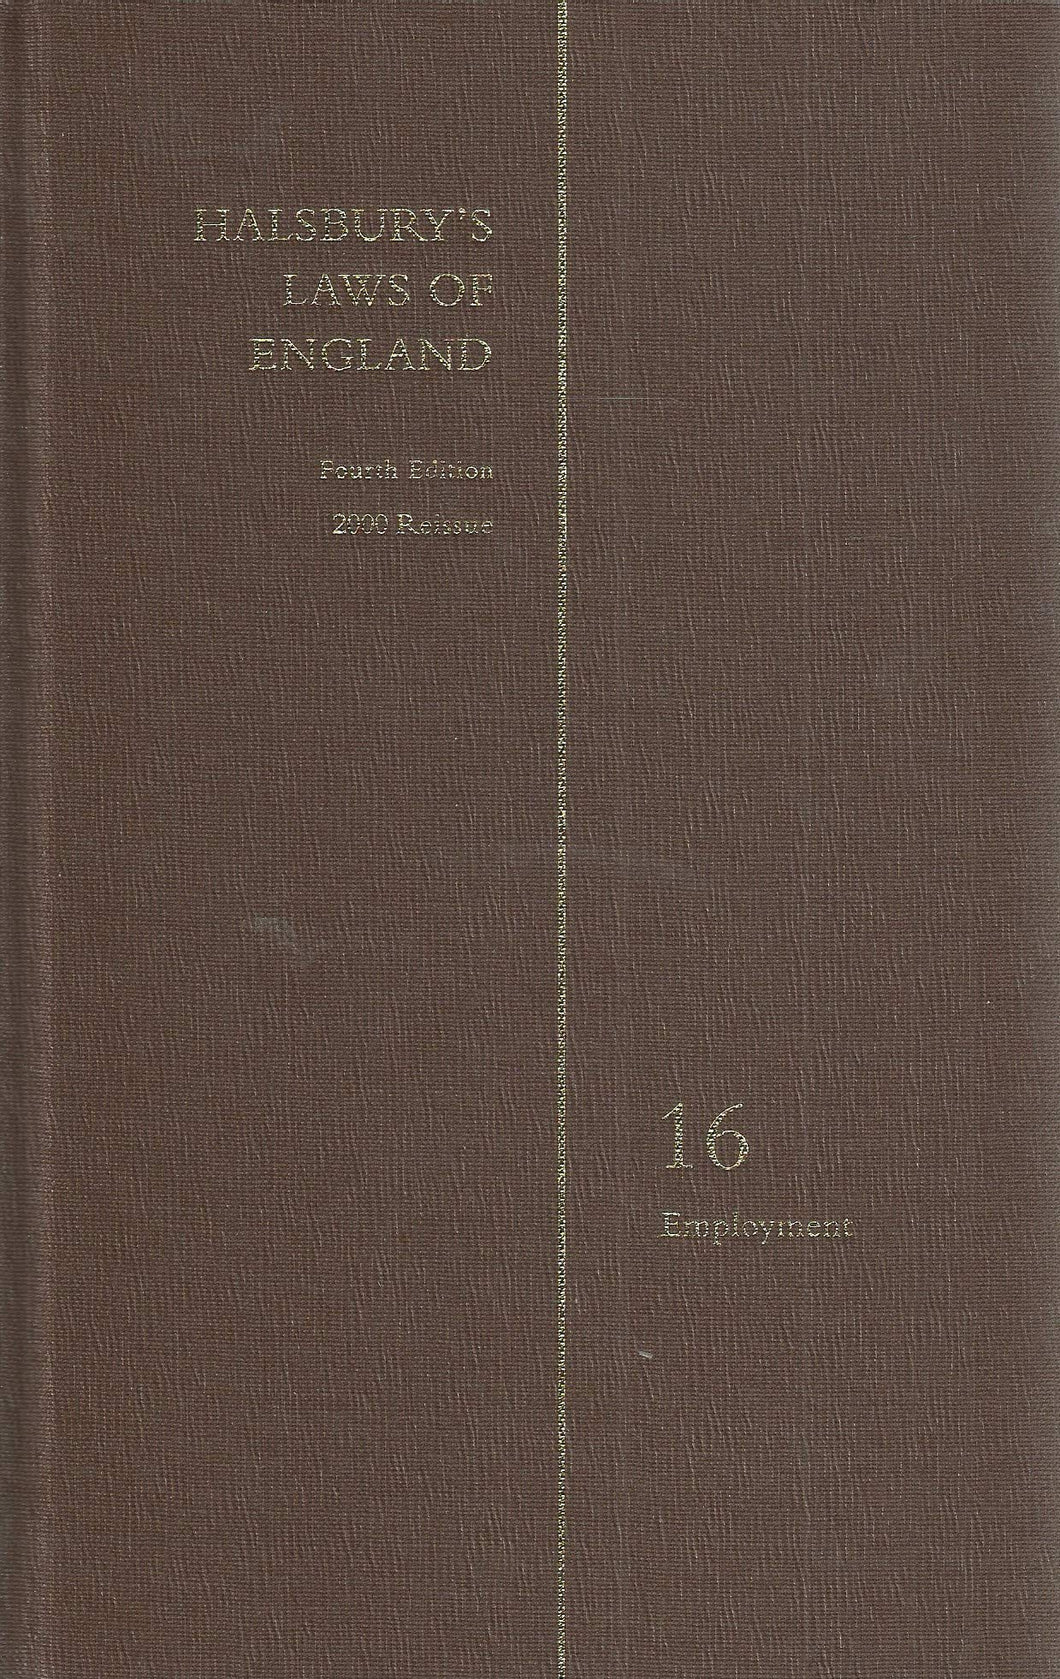 HALSBURY'S LAWS OF ENGLAND: VOLUME 16  EMPLOYMENT